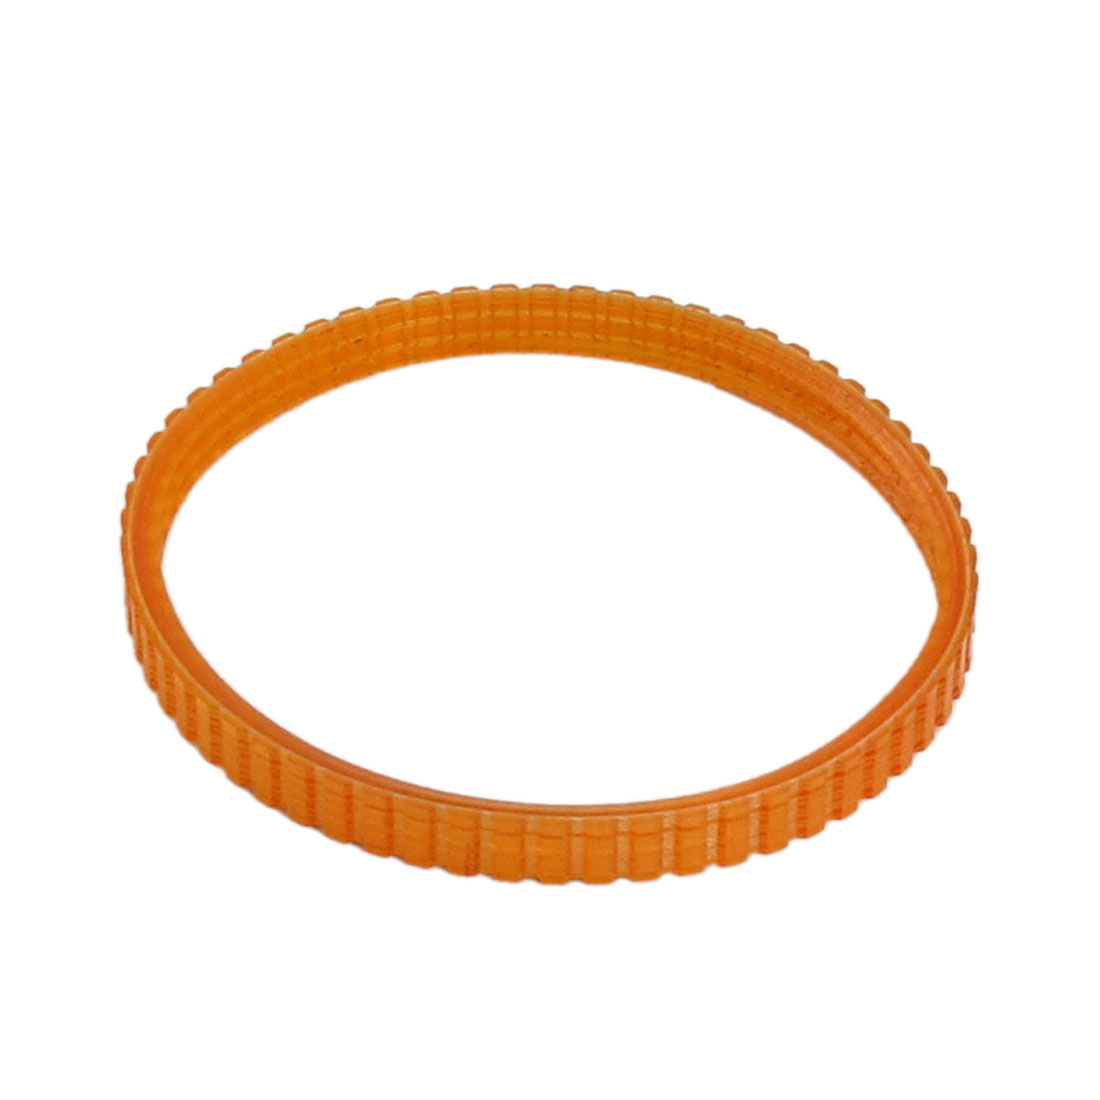 25cm x 0.7cm Electric Sander Drive Driving Belt for Makita 9045